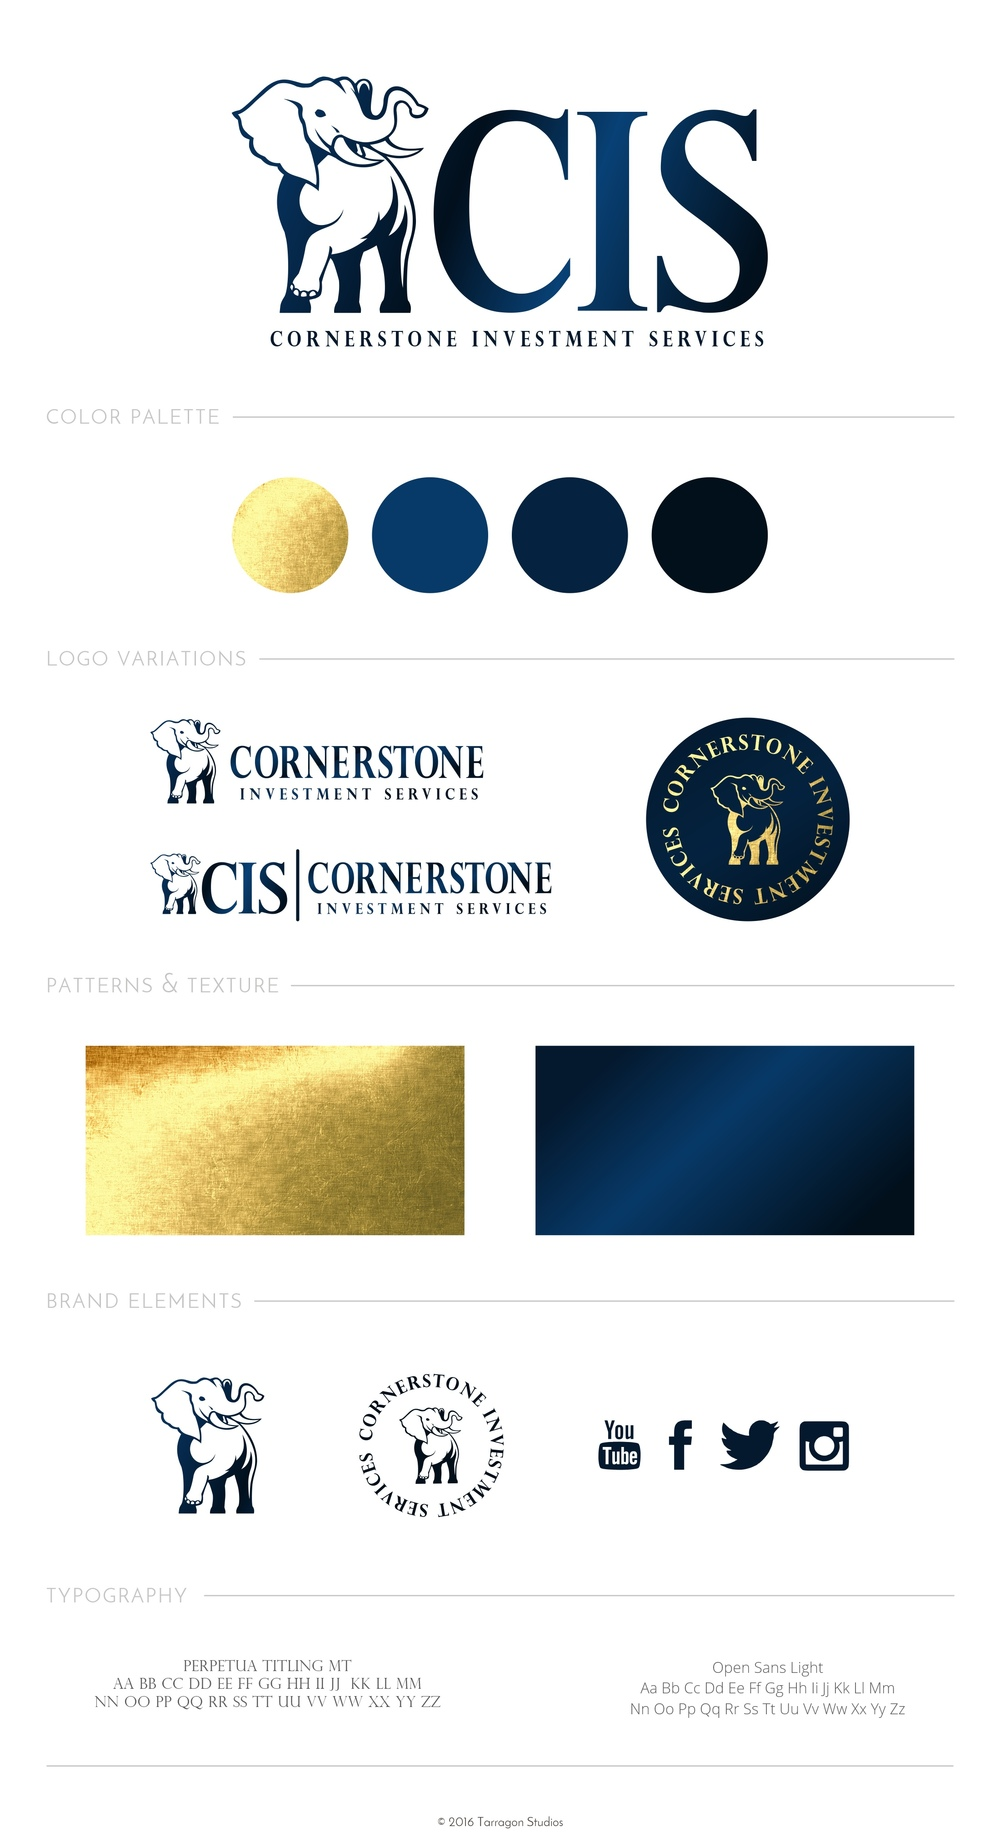 Brand style guide for Cornerstone Investment Services. For more inspiration click to check out the blog!